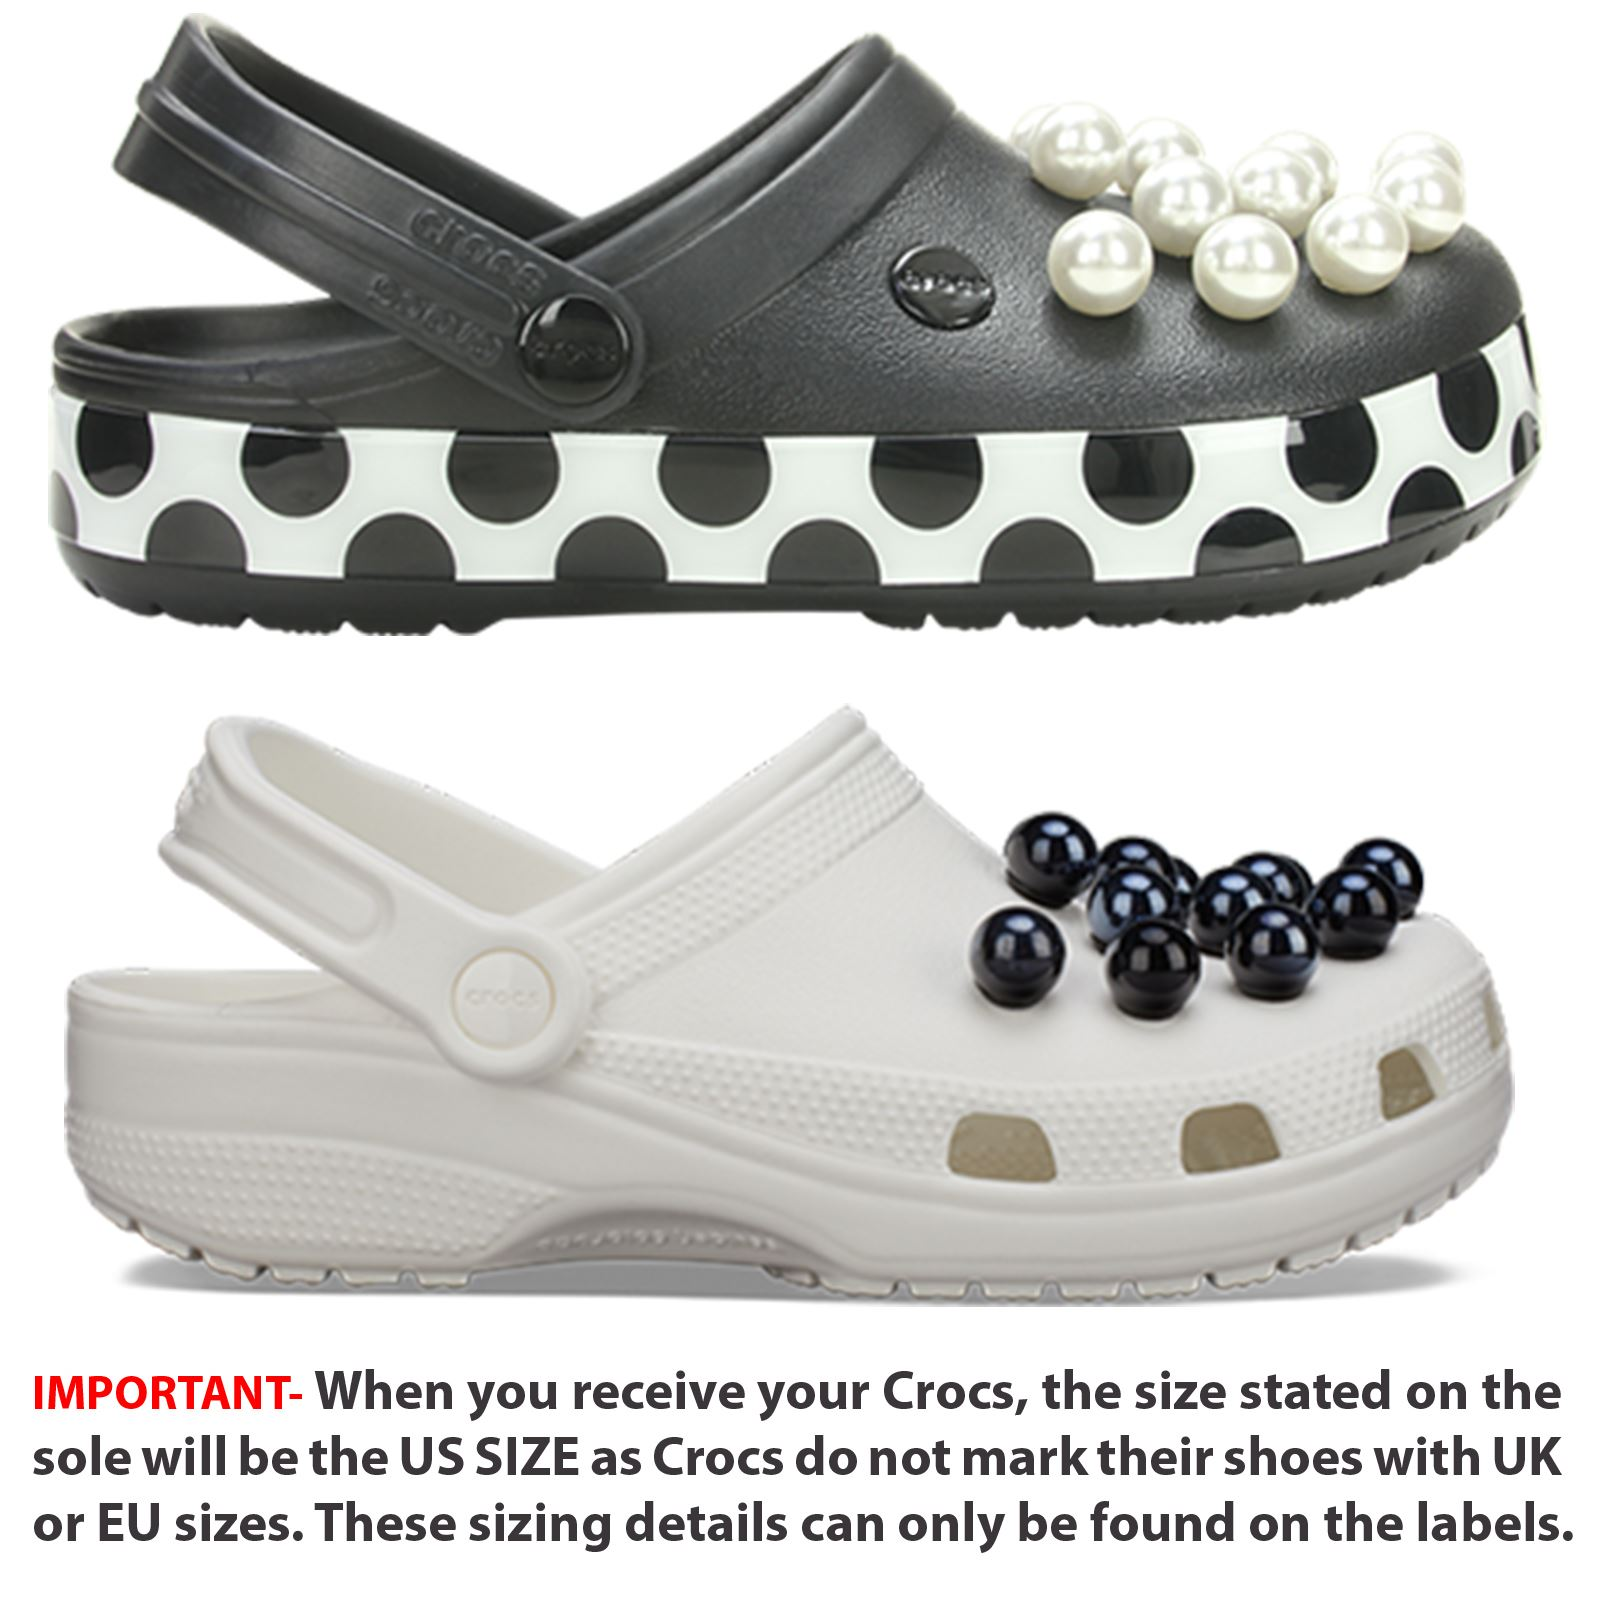 3abbe212b Crocs Crocband Timeless Clash Pearl Relaxed Fit Polka Dot Shoes in Black    White